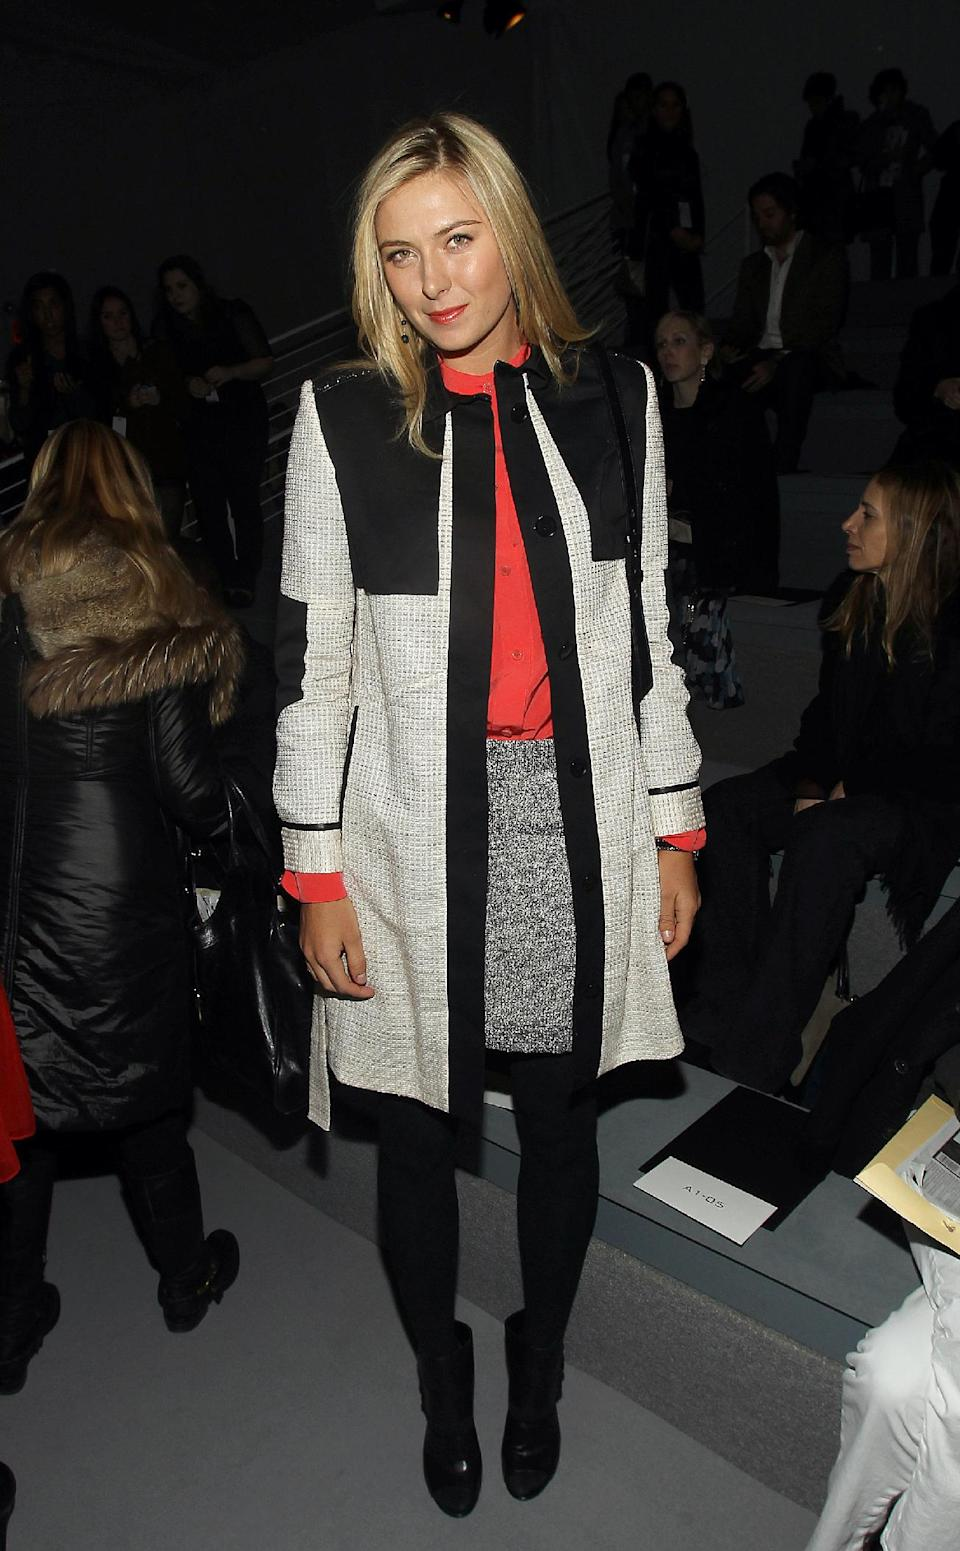 Tennis Player Maria Sharapova attends the Vera Wang Fall 2012 show during Fashion Week in New York, Tuesday, Feb. 14, 2012. (AP Photo/ Donald Traill)